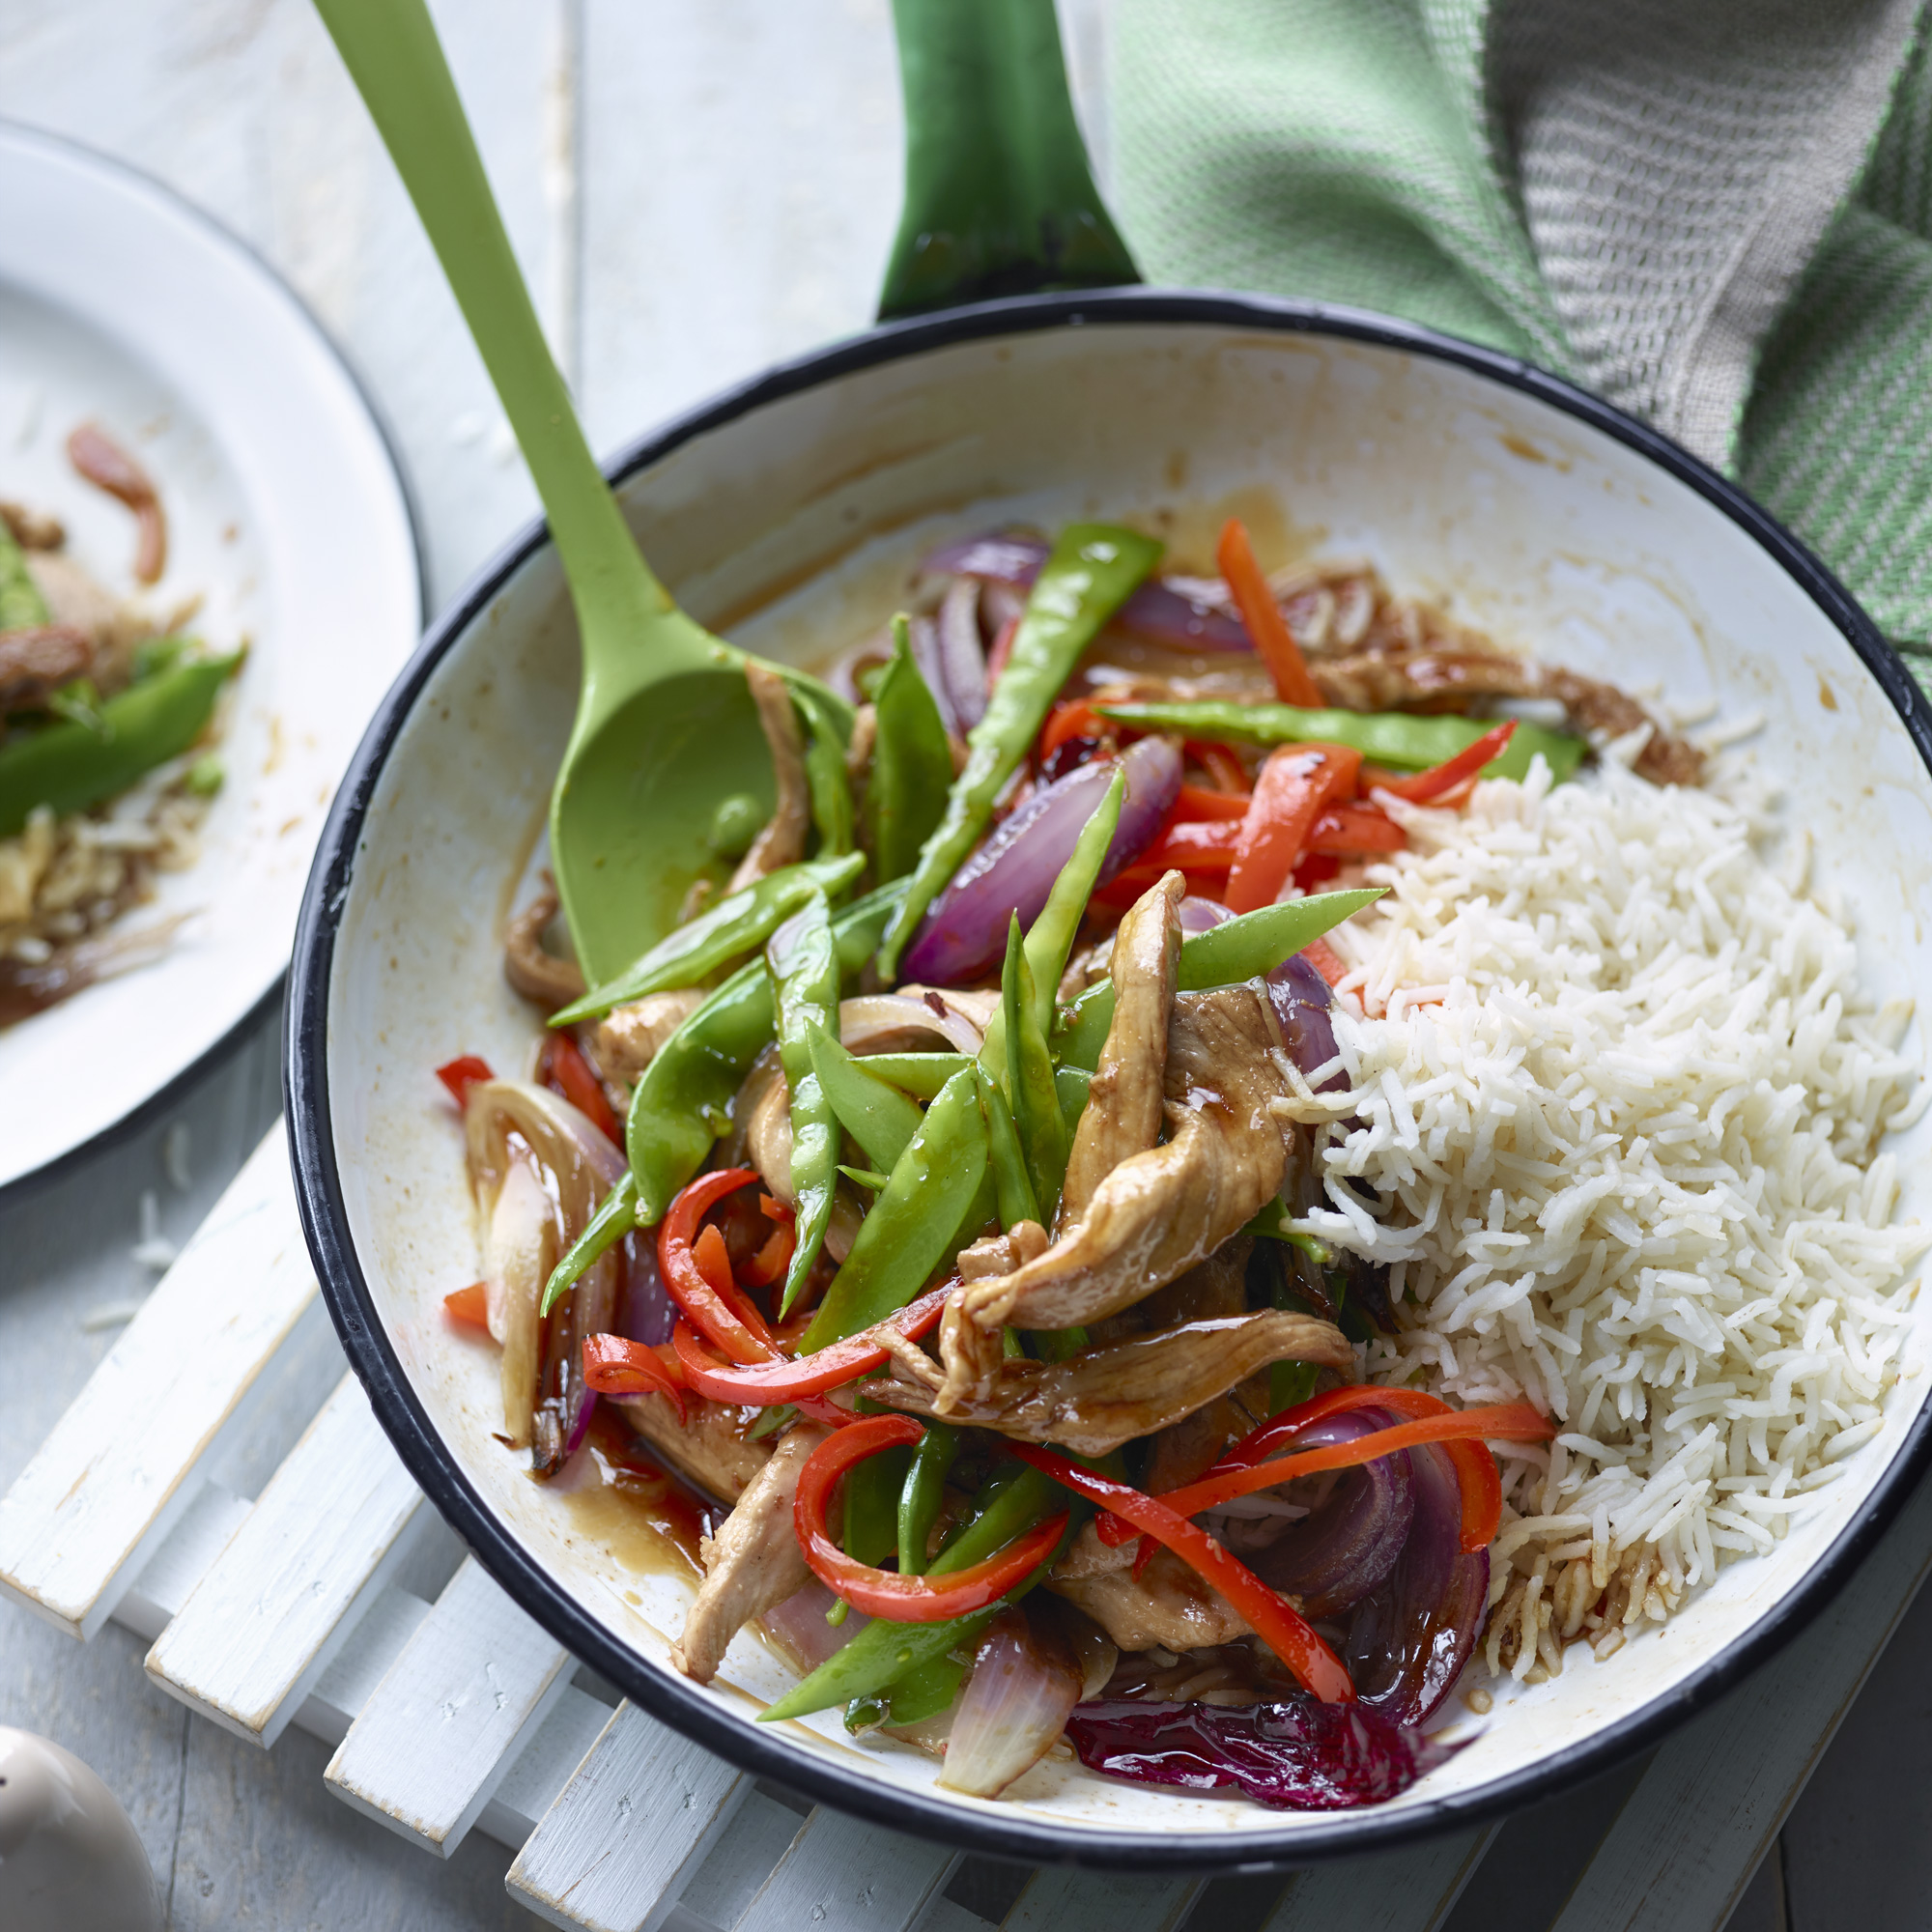 Joe wicks sweet and sour pork with rice forumfinder Gallery